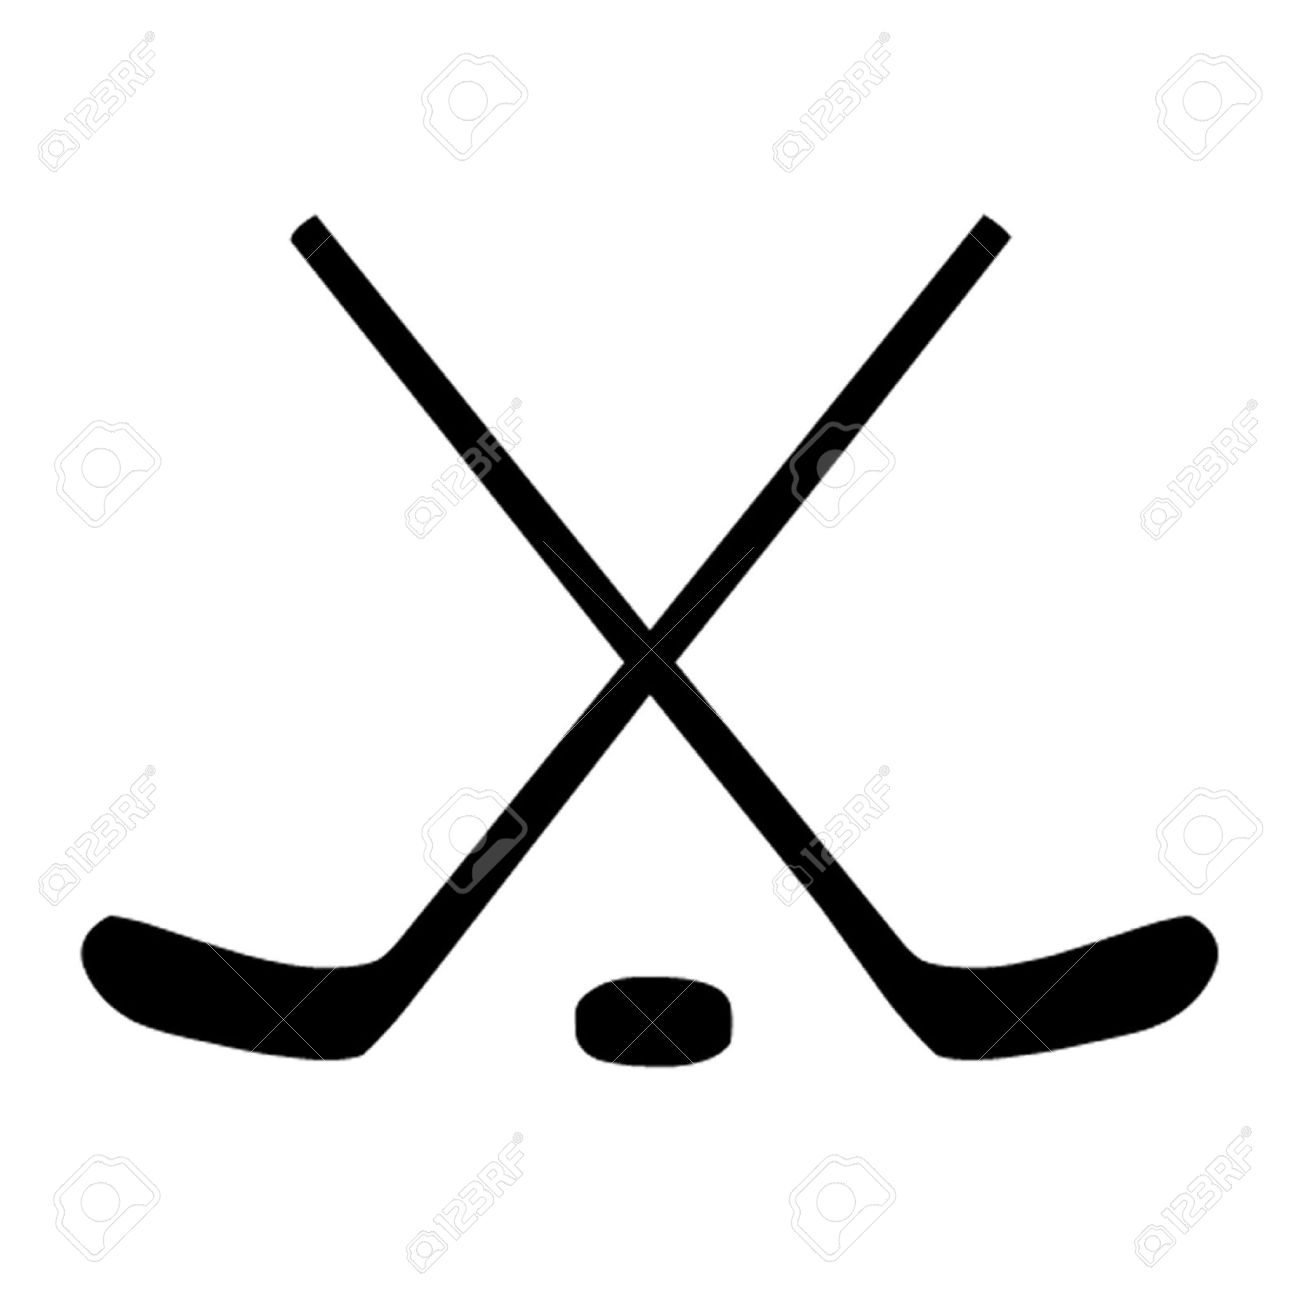 hight resolution of 1300x1300 ice hockey sticks puck royalty free cliparts vectors